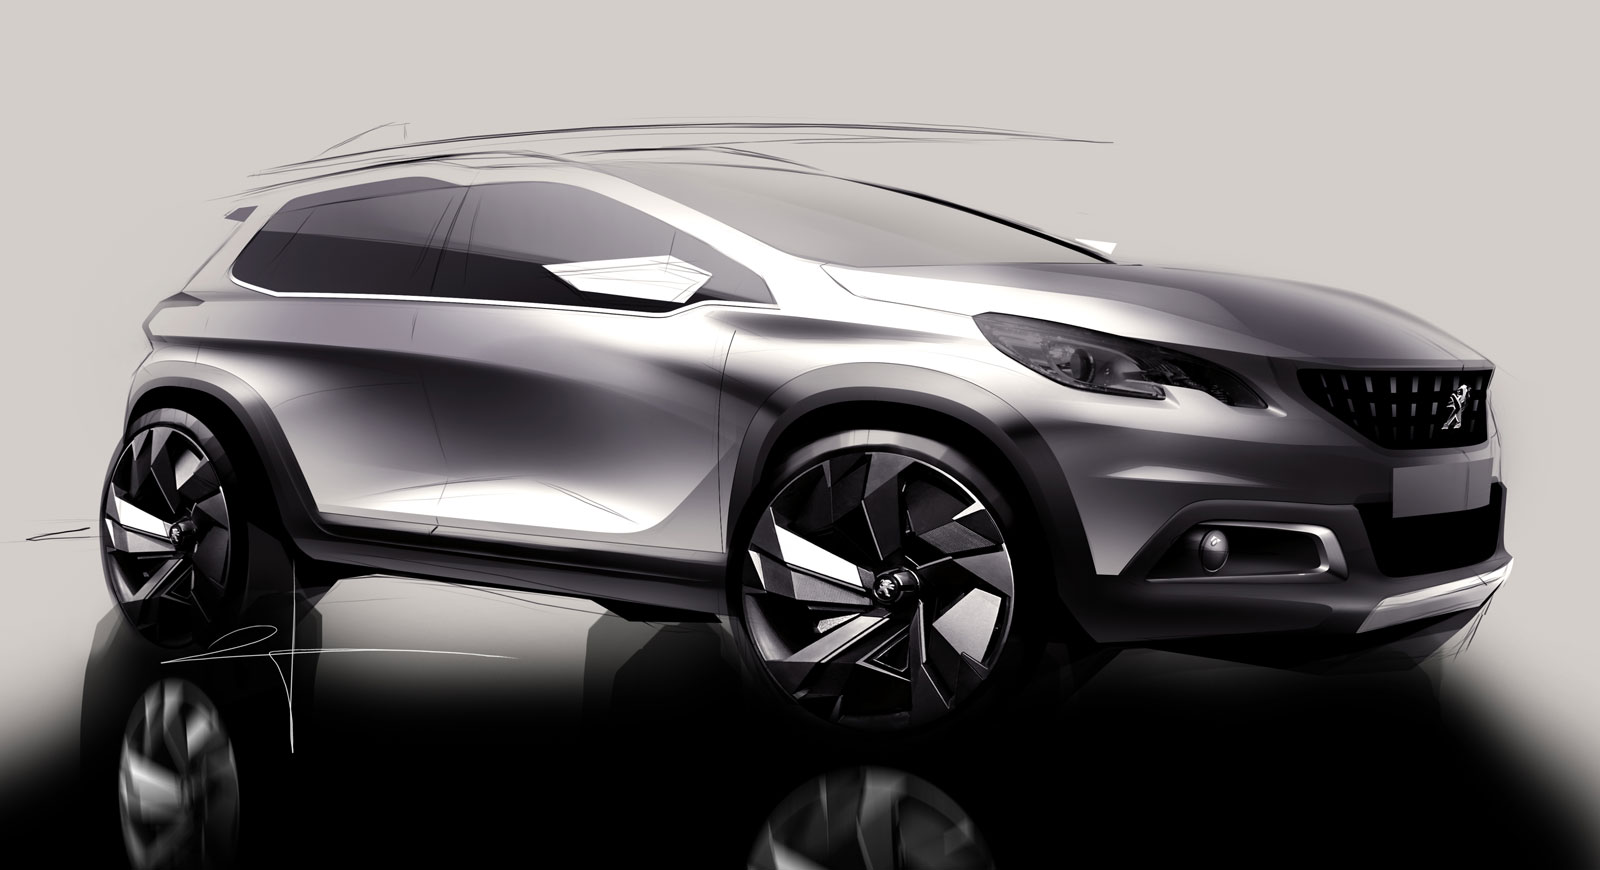 peugeot unveils restyled 2008 car body design. Black Bedroom Furniture Sets. Home Design Ideas